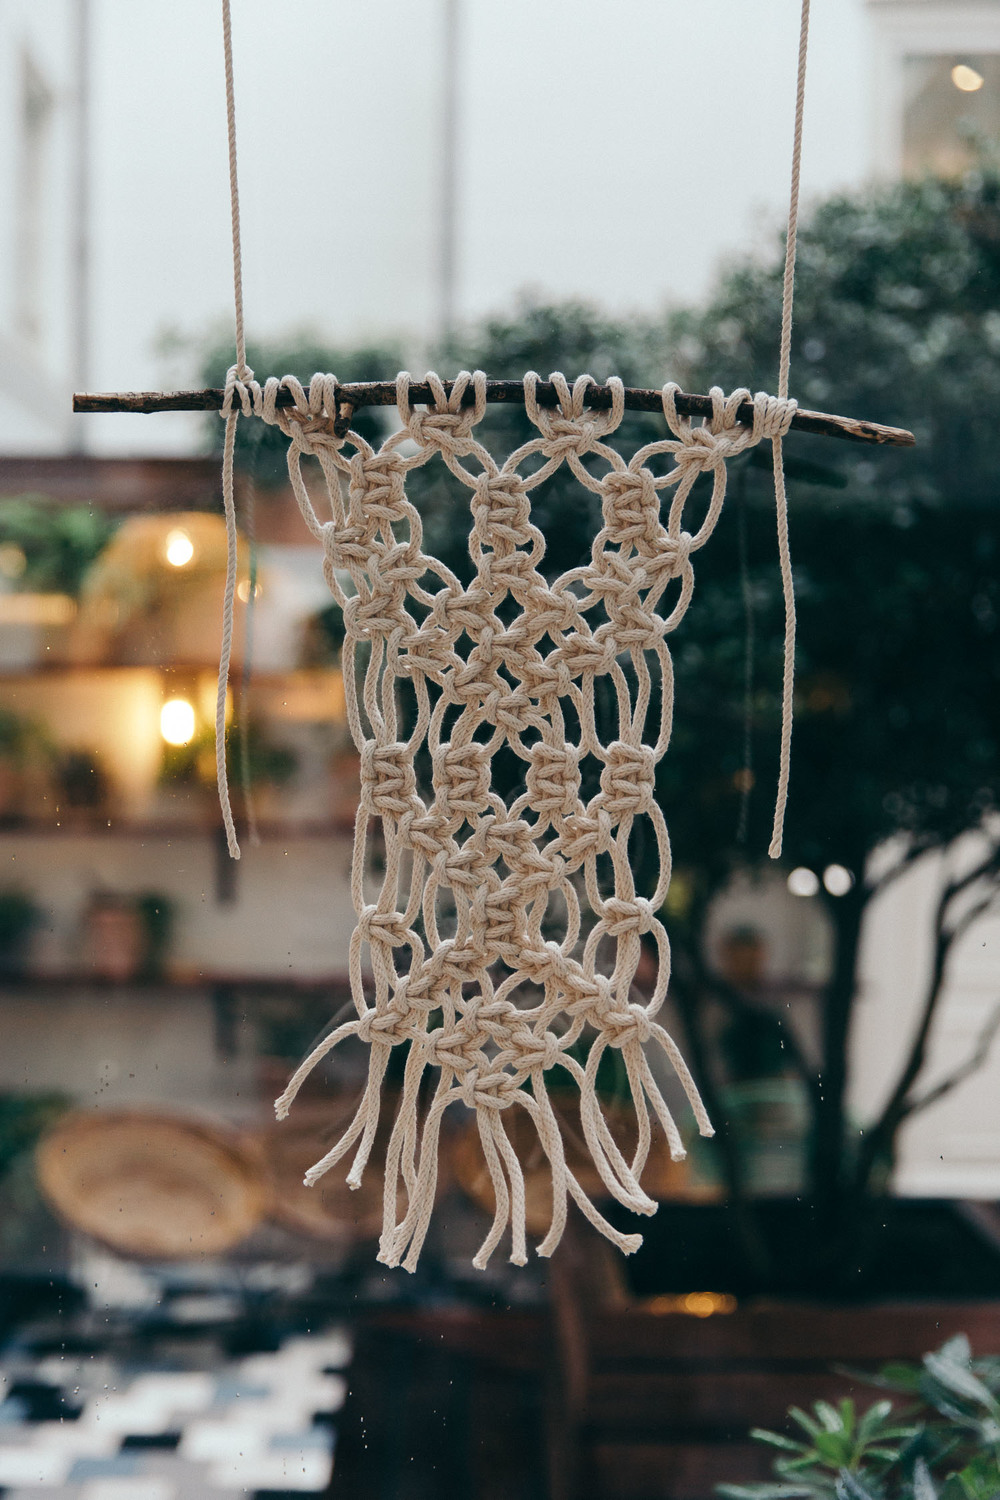 Macrame workshop Emily Katz at The Hoxton Amsterdam